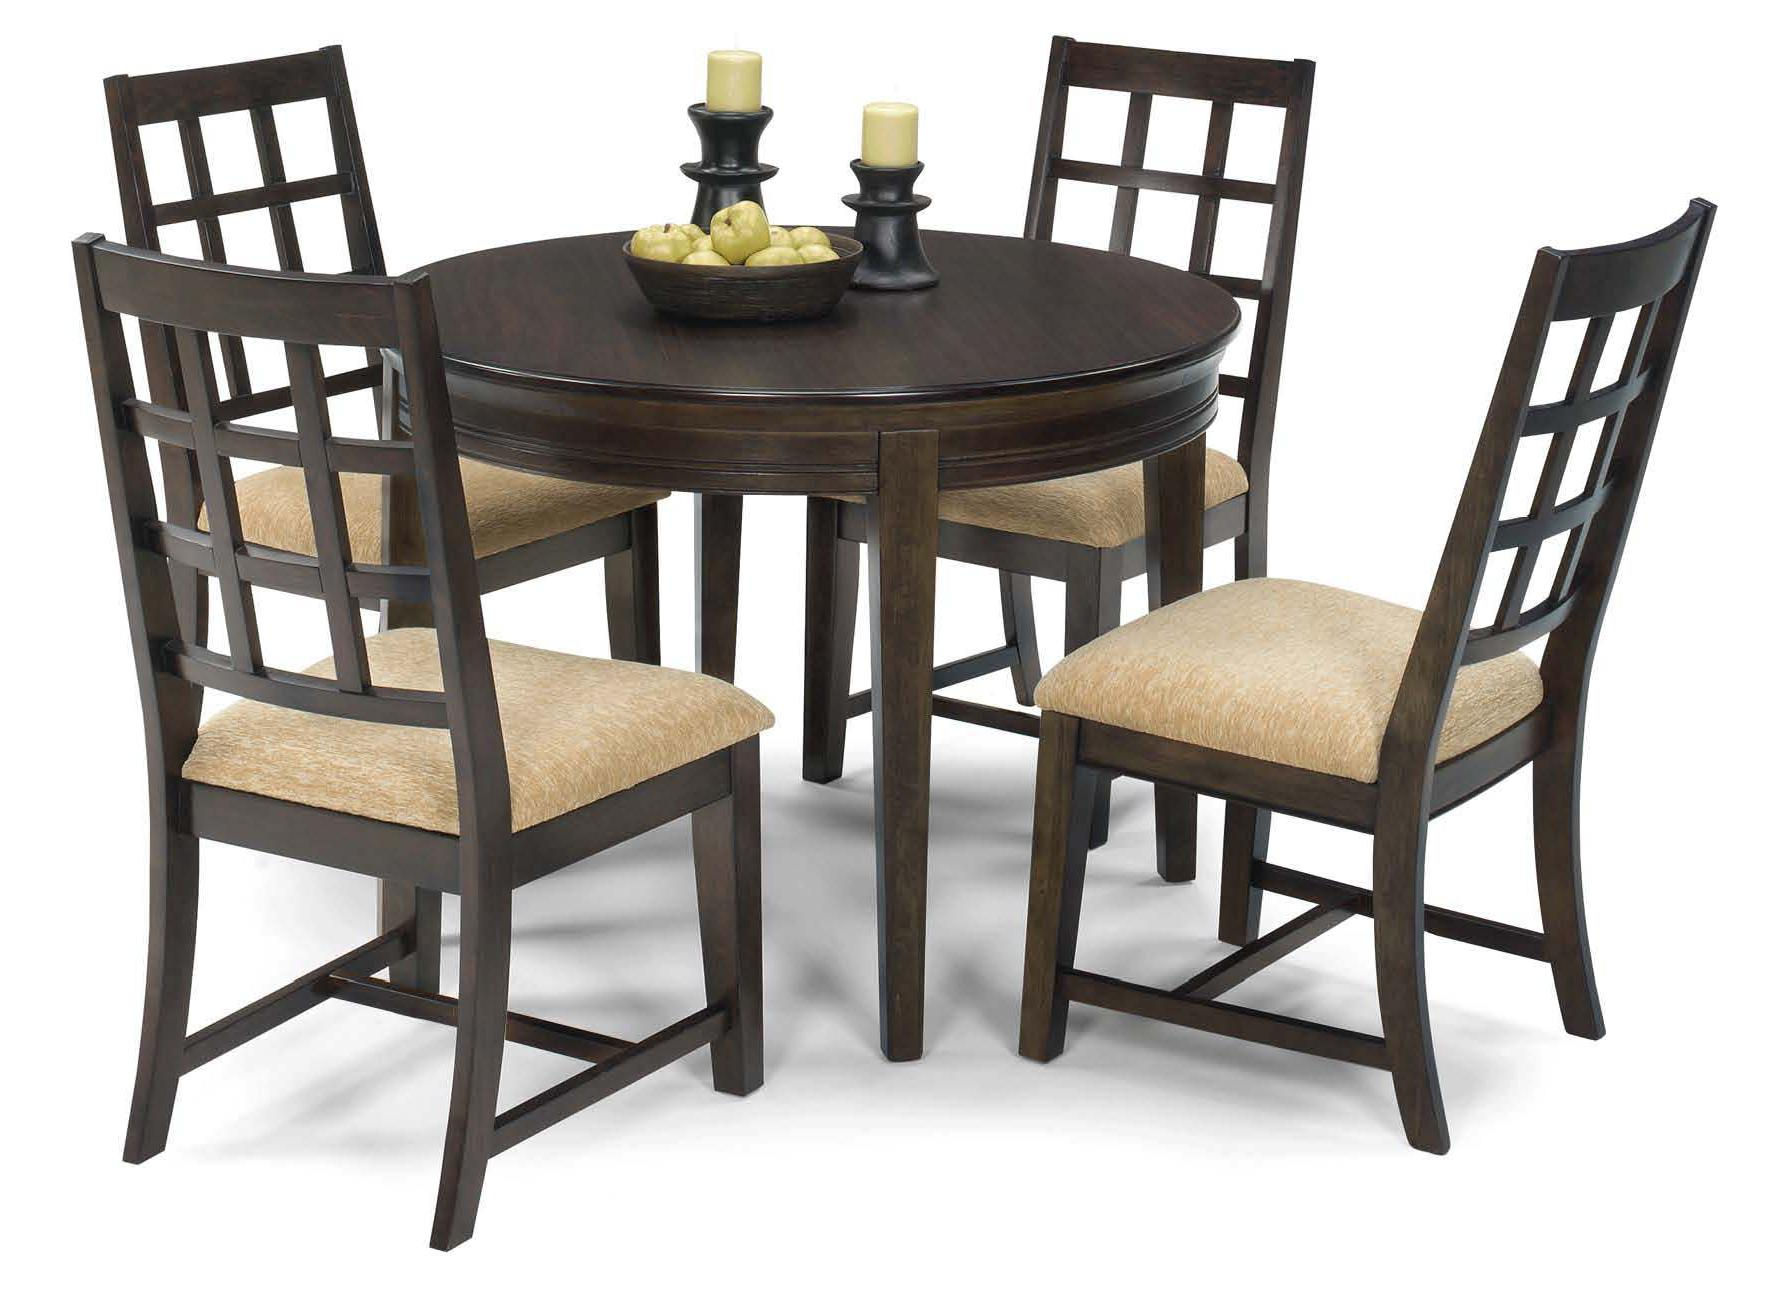 Progressive Furniture Casual Traditions 5 Piece Round Dining Table Set - Item Number: P107-13+4x61